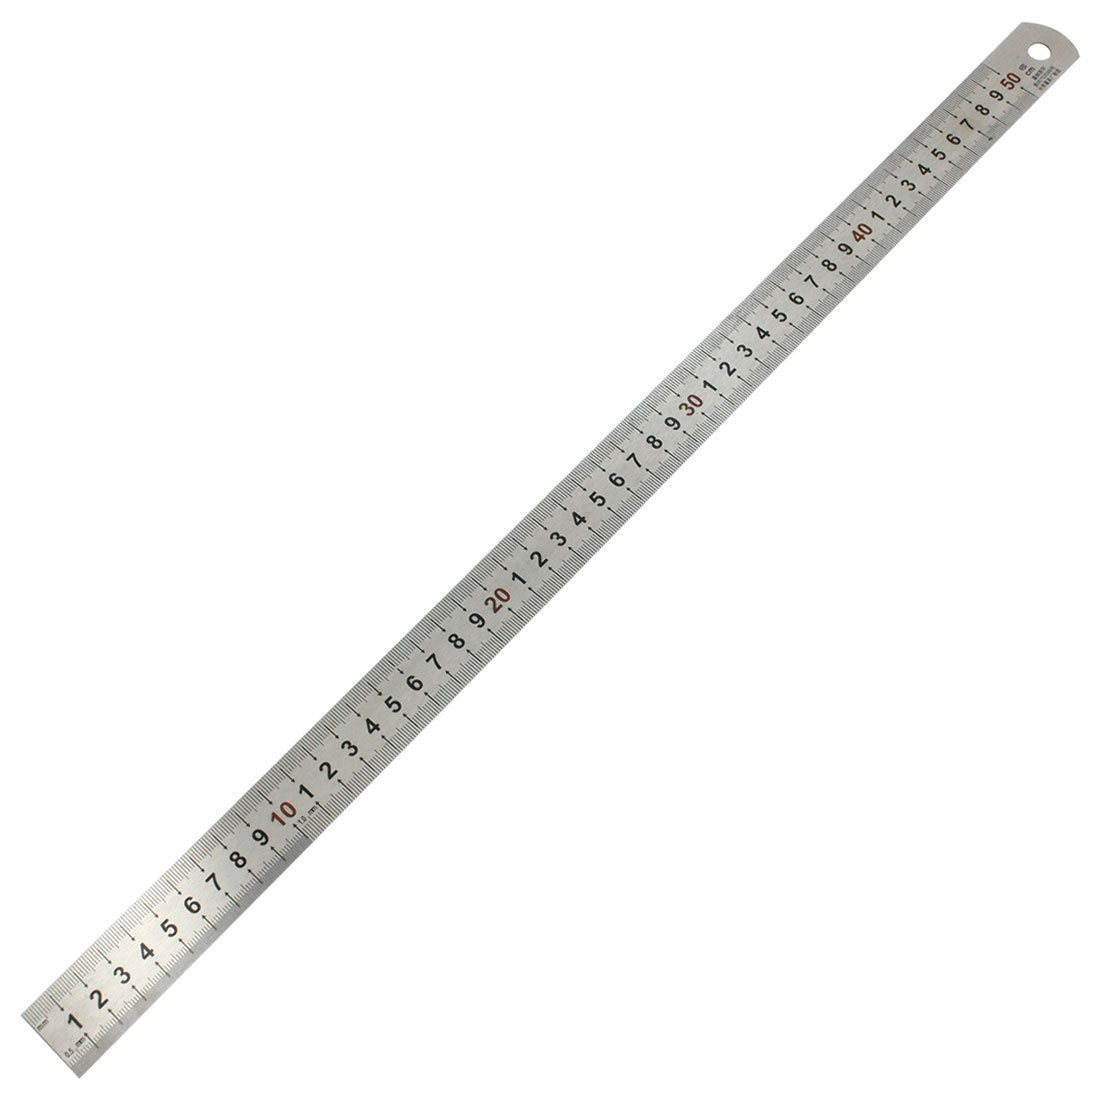 SOSW-Double Side Scale Stainless Steel Straight Ruler Measuring Tool 50cm